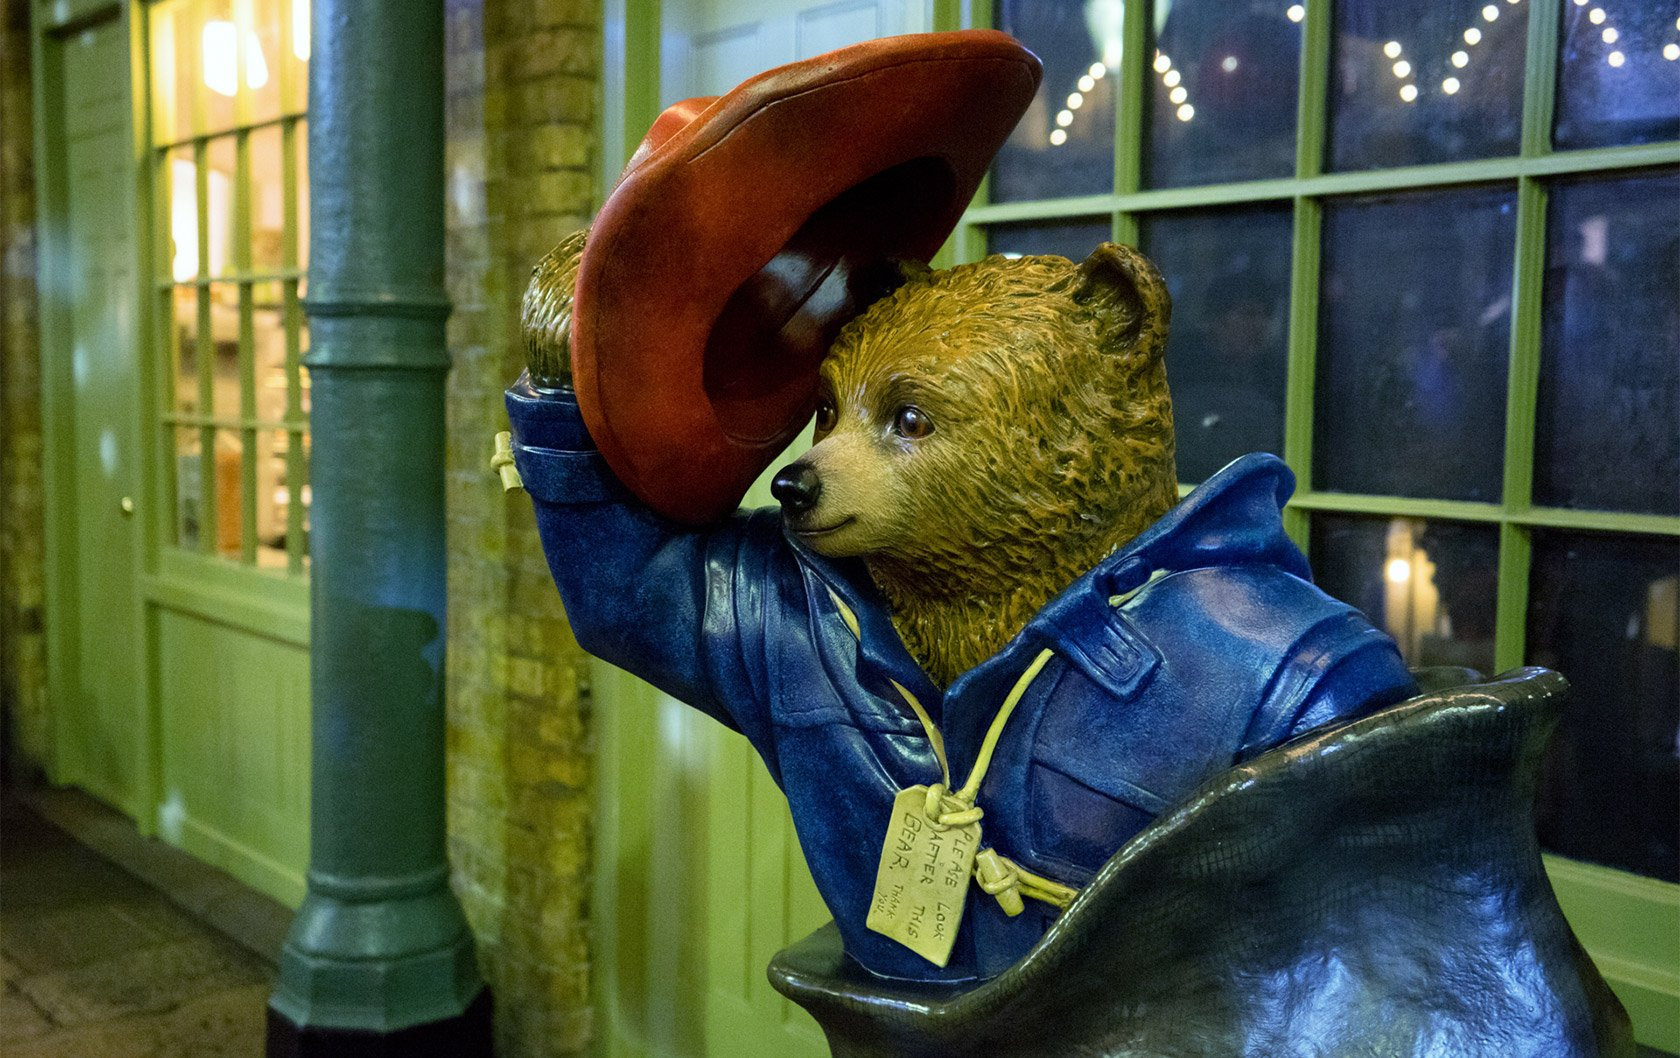 paddington-bear-covent-garden-credit-Paul-Hudson-flickr